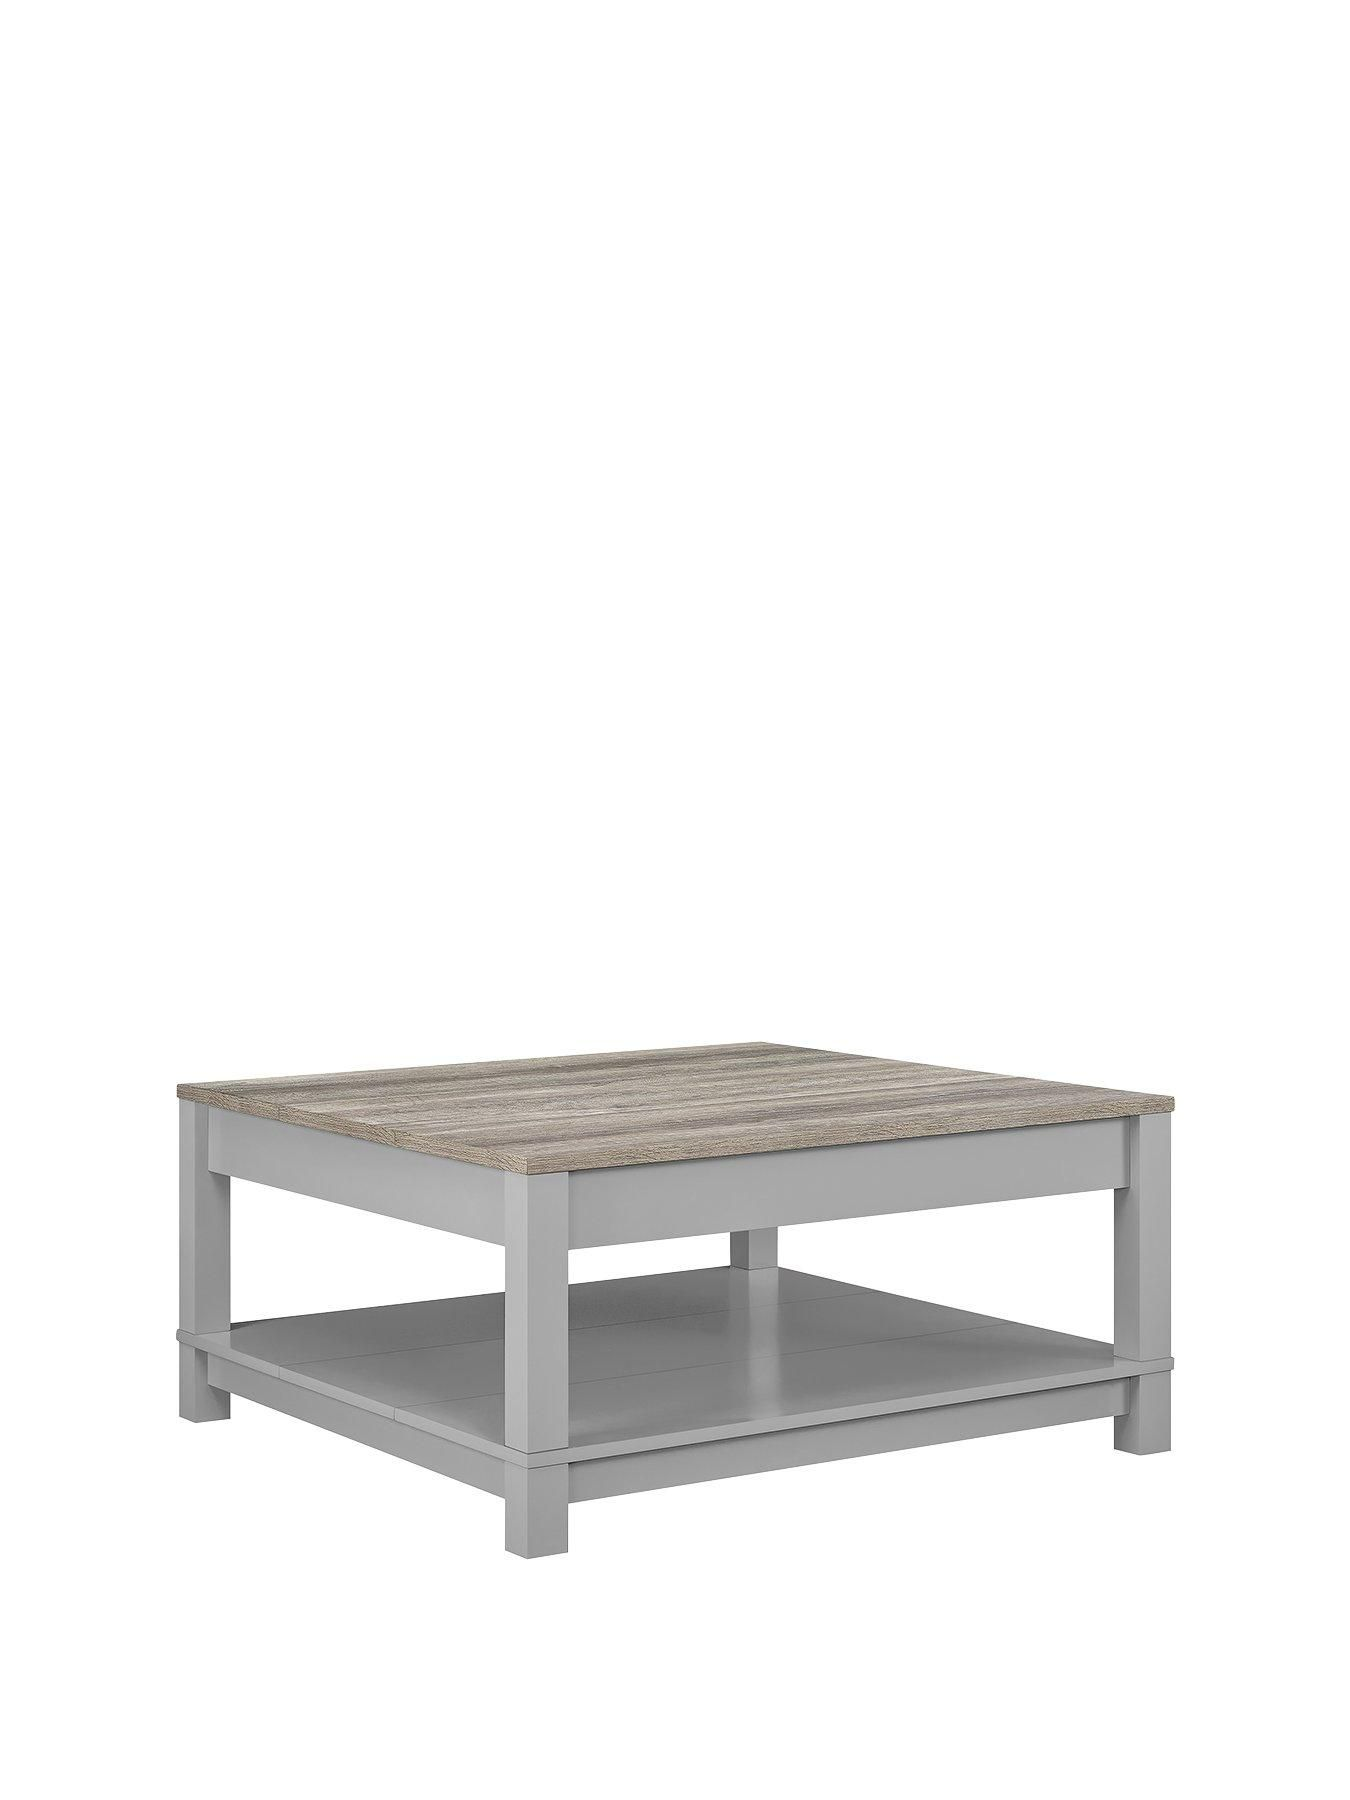 Carver Coffee Table Stylish Coffee Table Coffee Table Grey Modern Coffee Tables